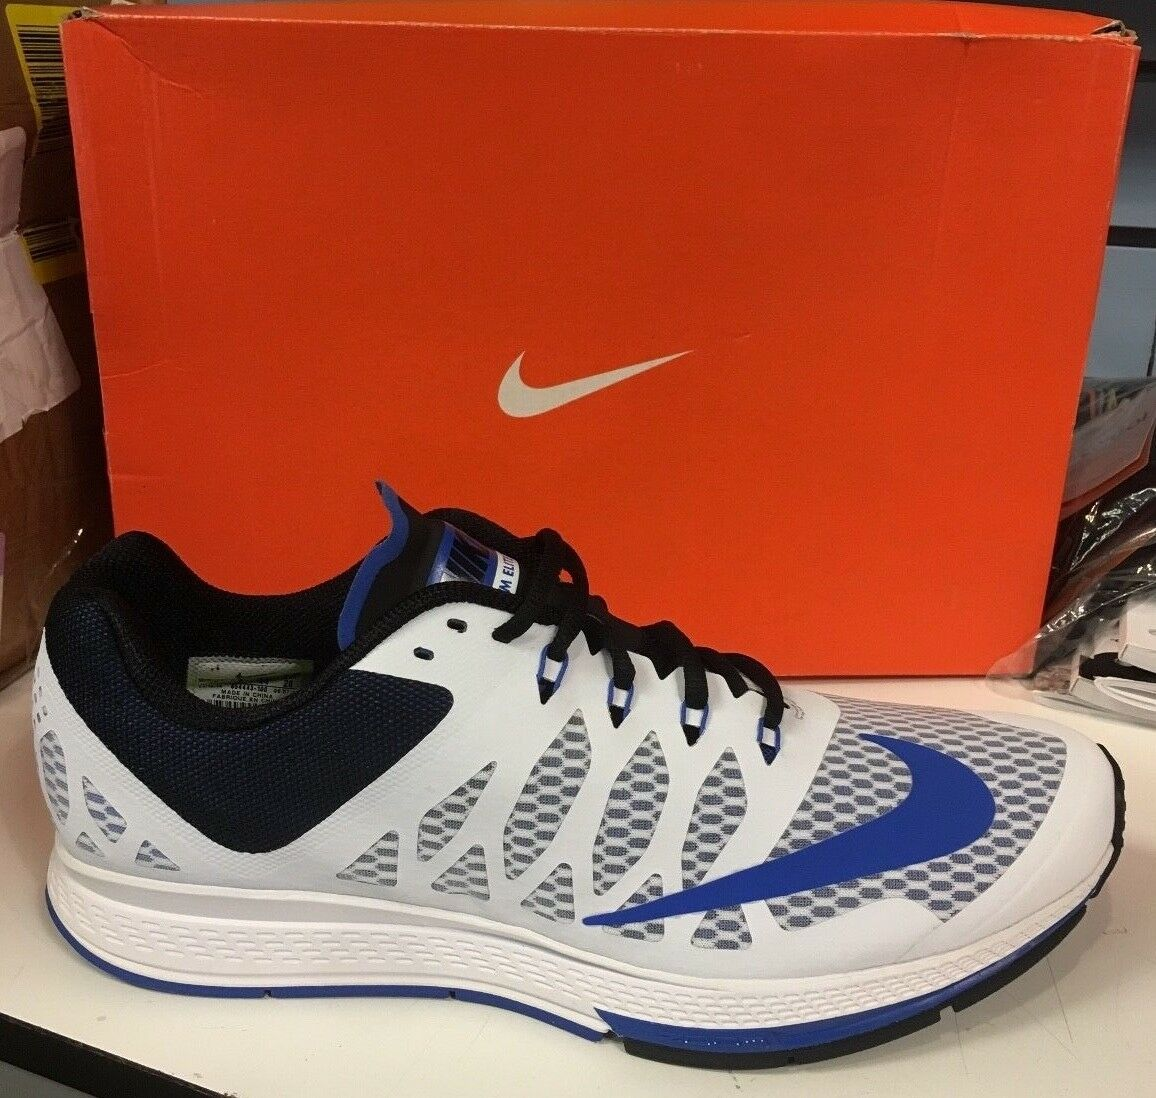 MENS NIKE ZOOM ELITE 7 654443 100 MENS 8.5